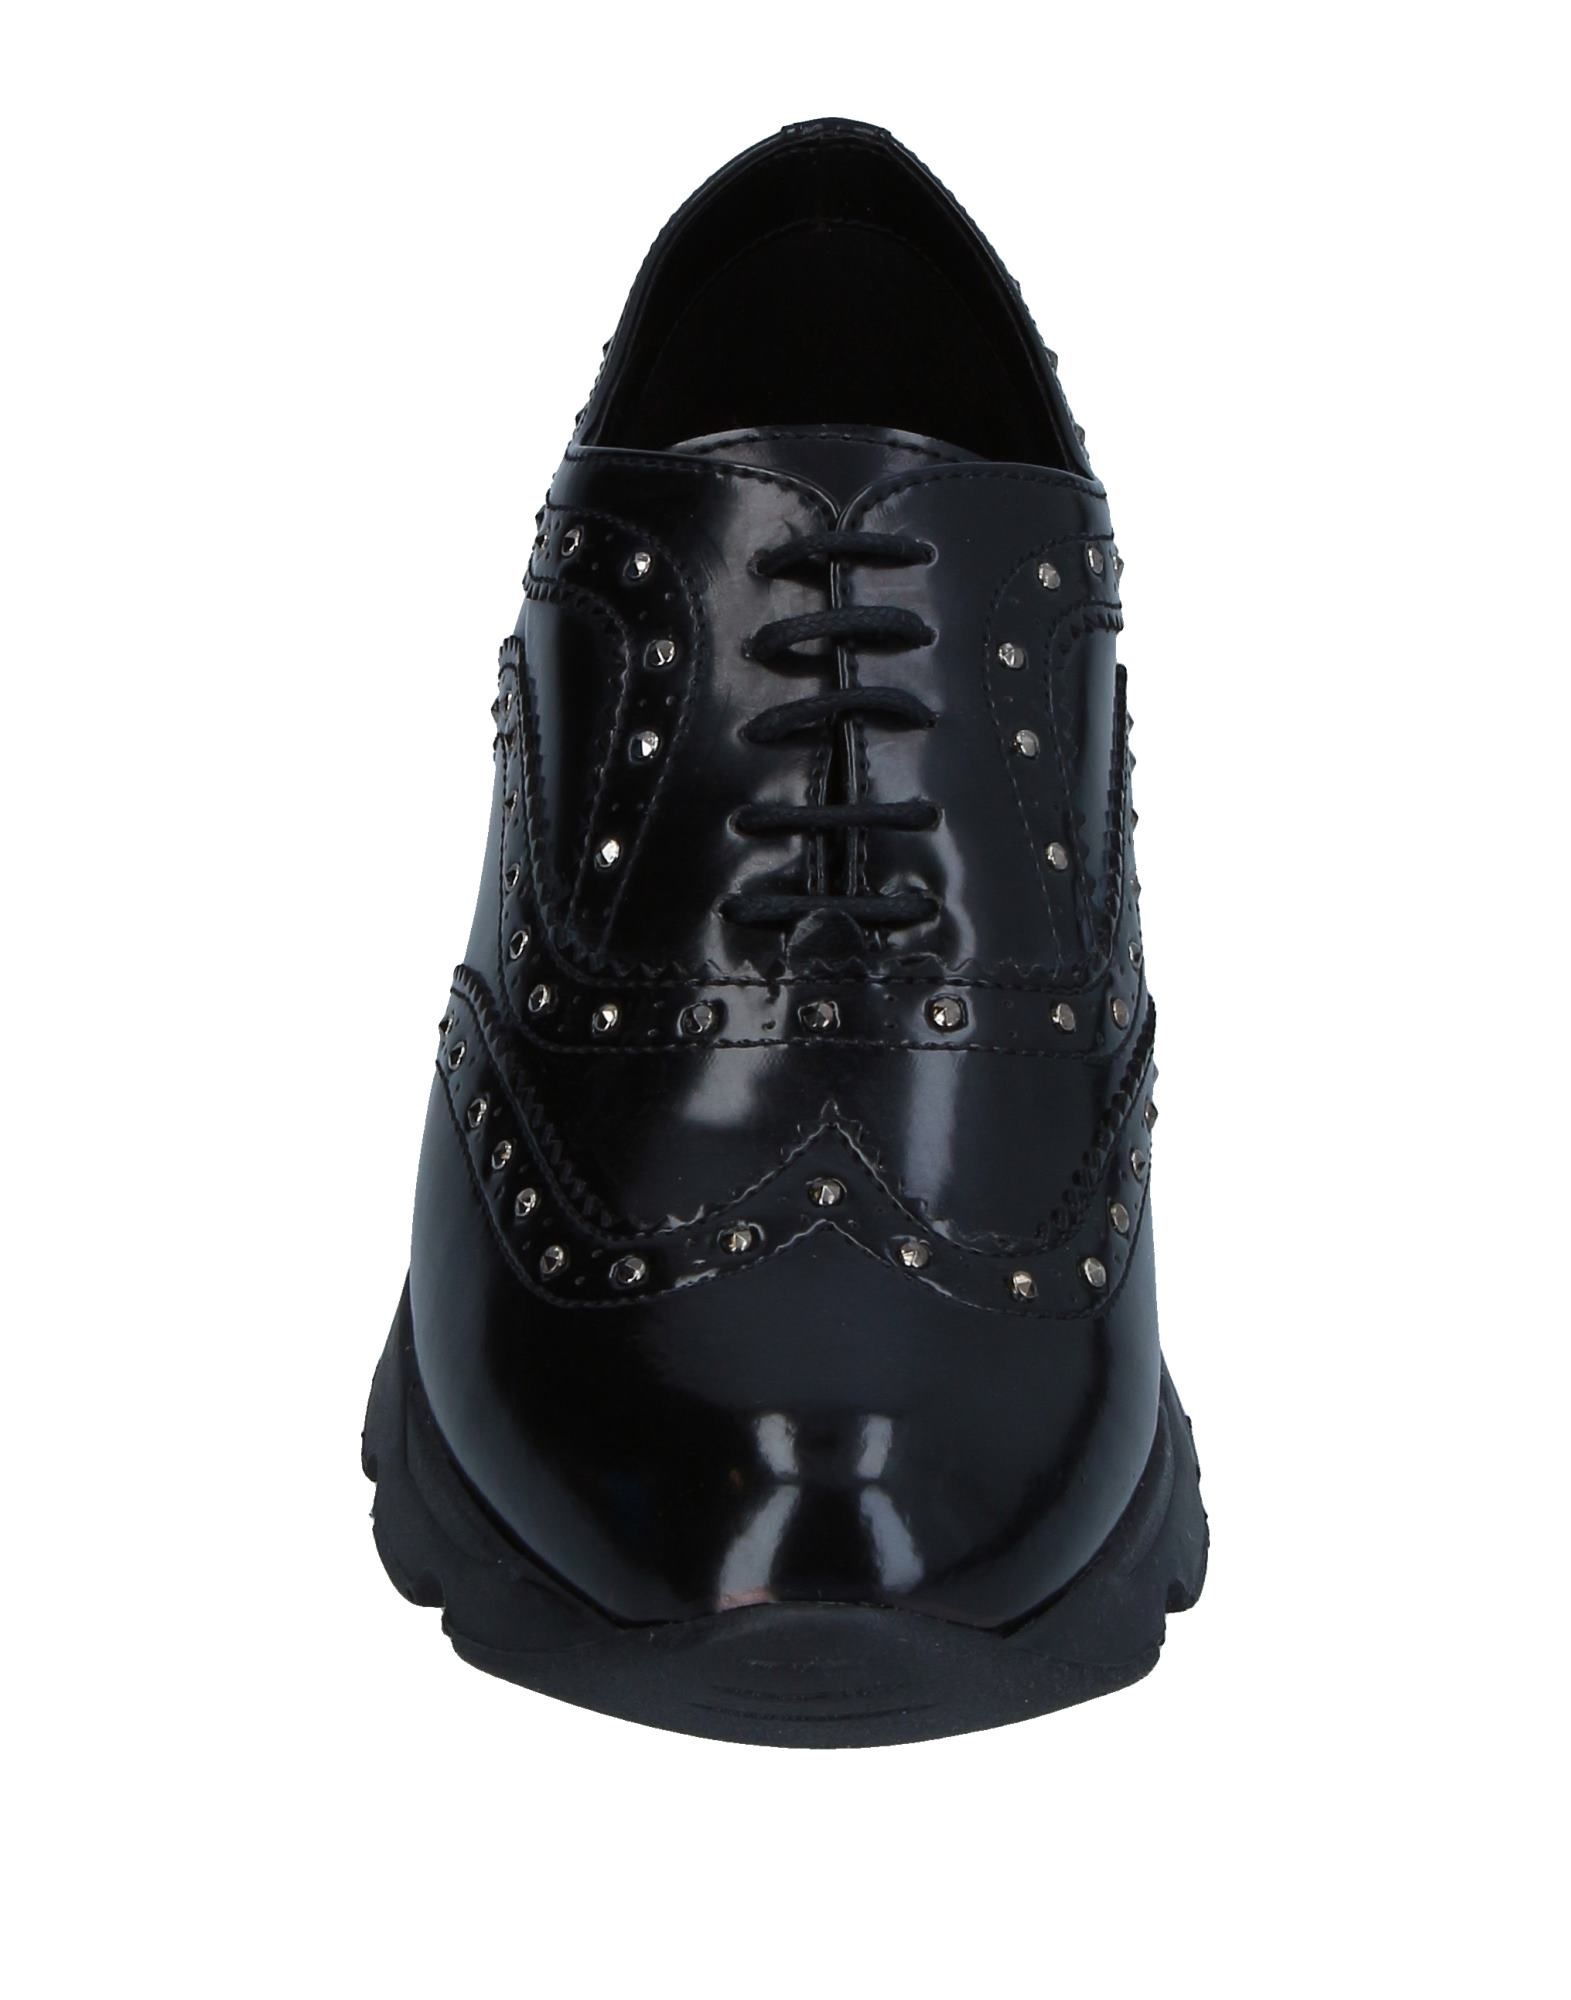 Pinko Sneakers - Women Pinko Sneakers online on  Canada Canada Canada - 11364735AW d03fc3